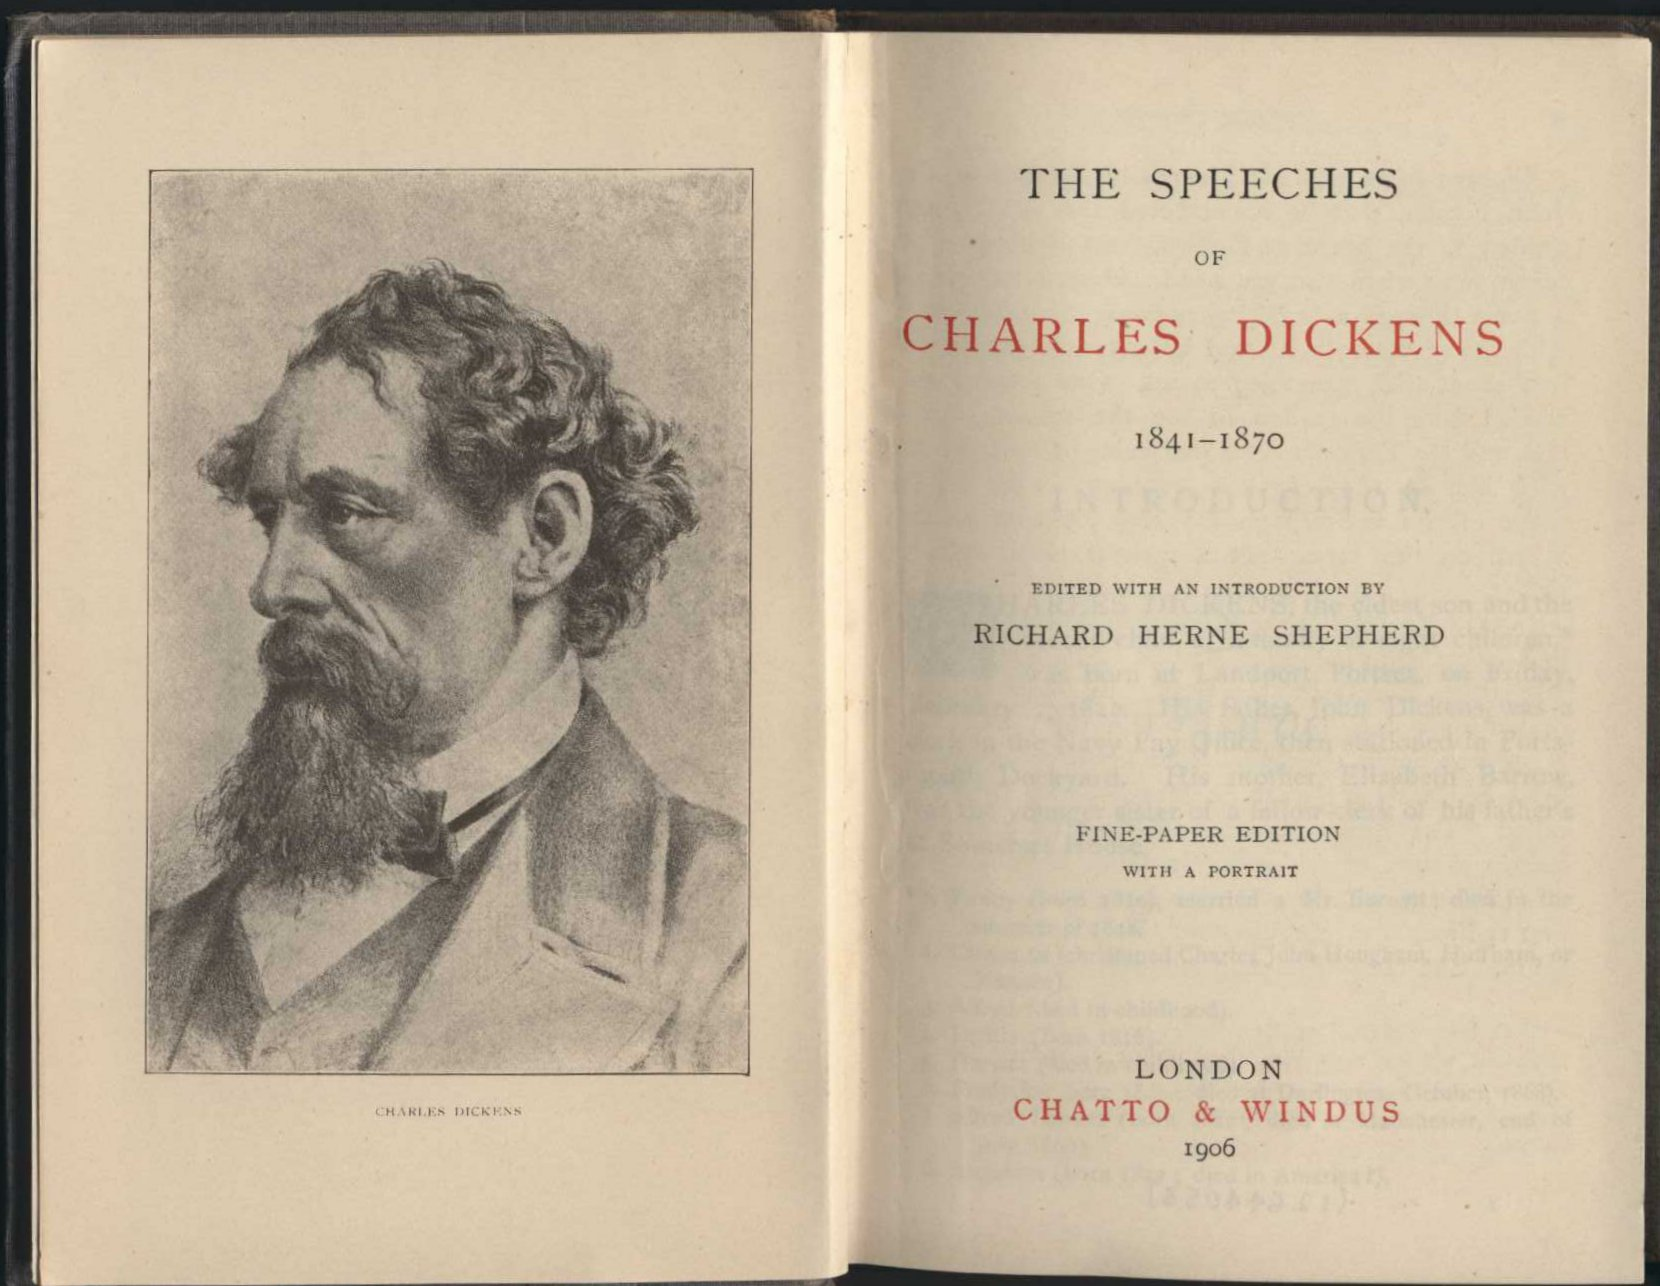 Richard Herne Shepherd (editor). The speeches of Charles Dickens, 1841-1870. Fine paper edition. London: Chatto & Windus, 1906.